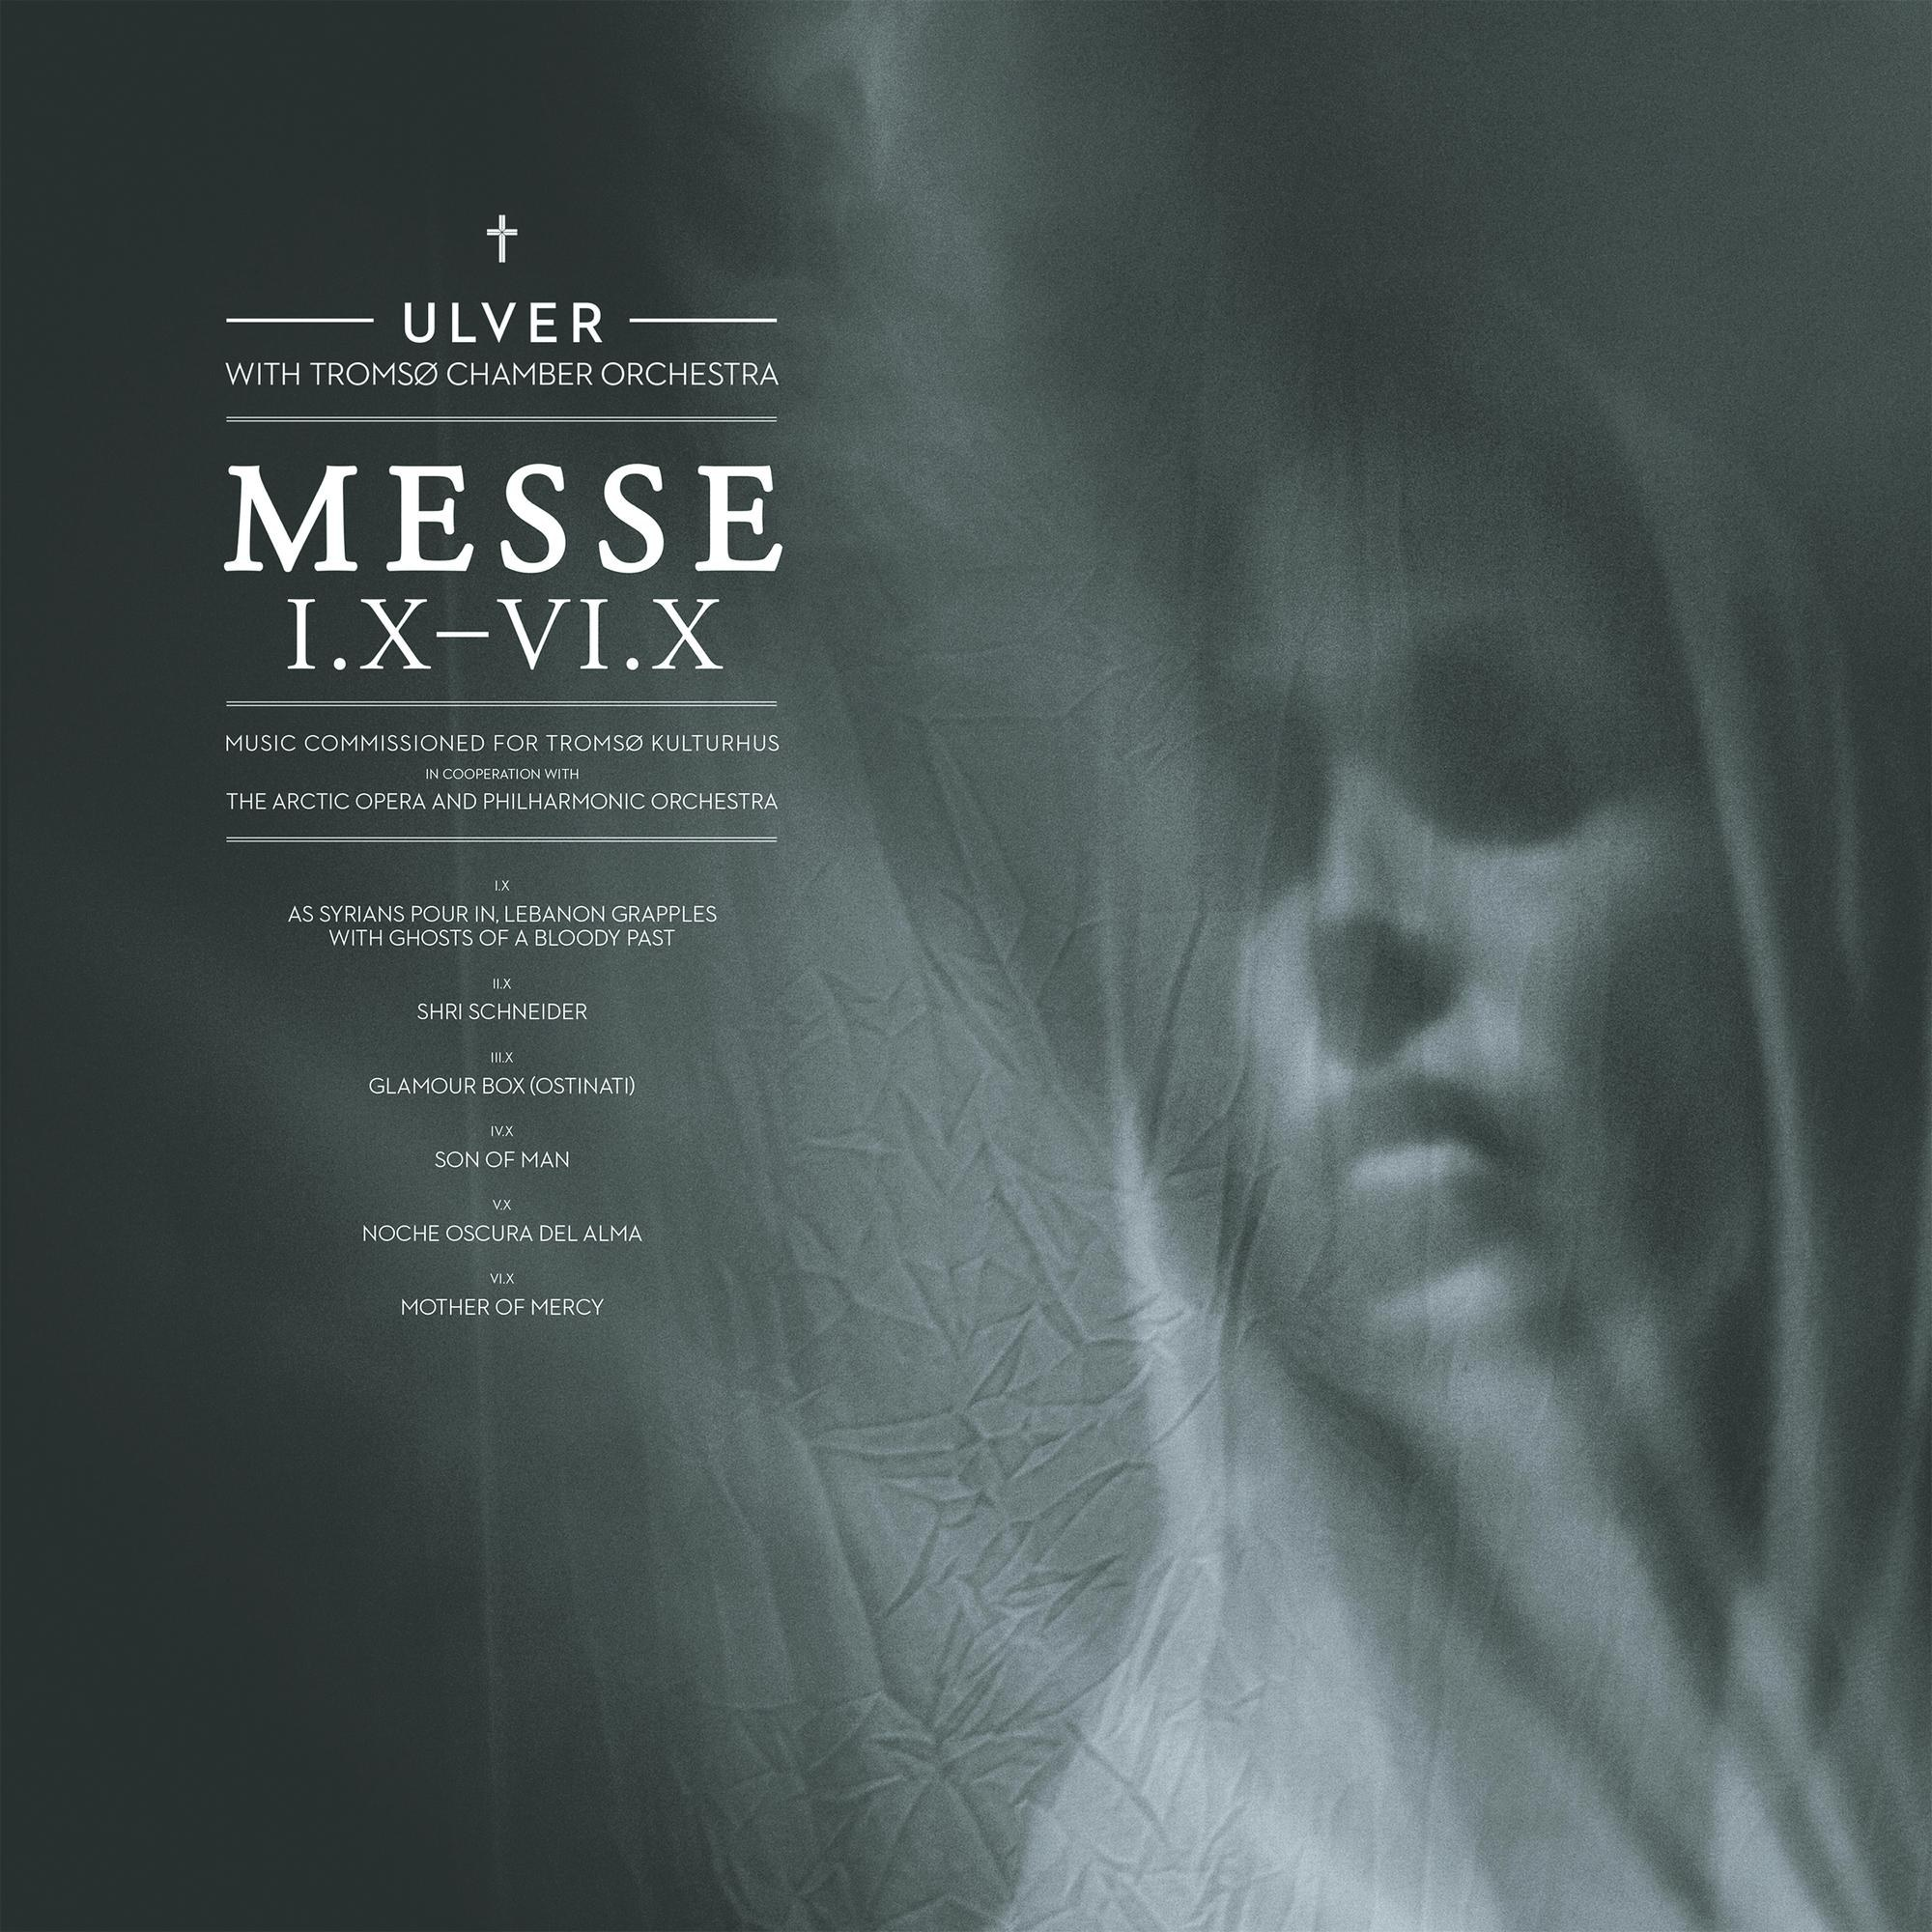 Review for Ulver - Messe I.X - VI.X